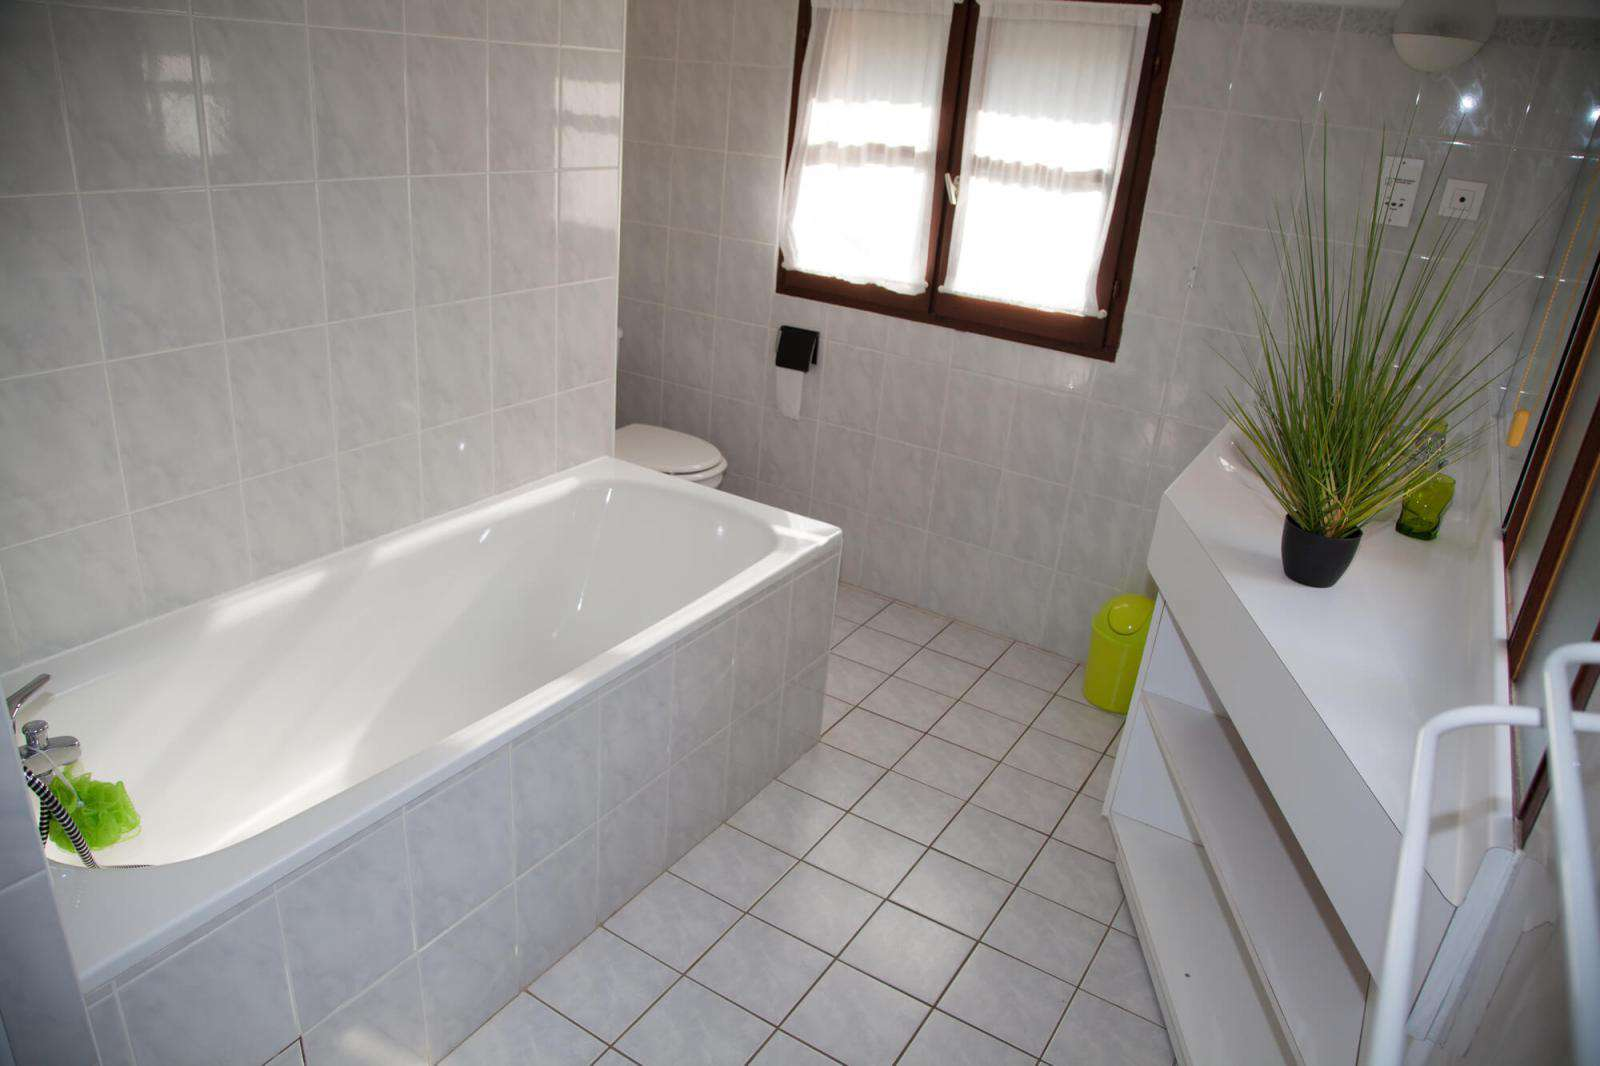 Refinished bathtub and tile